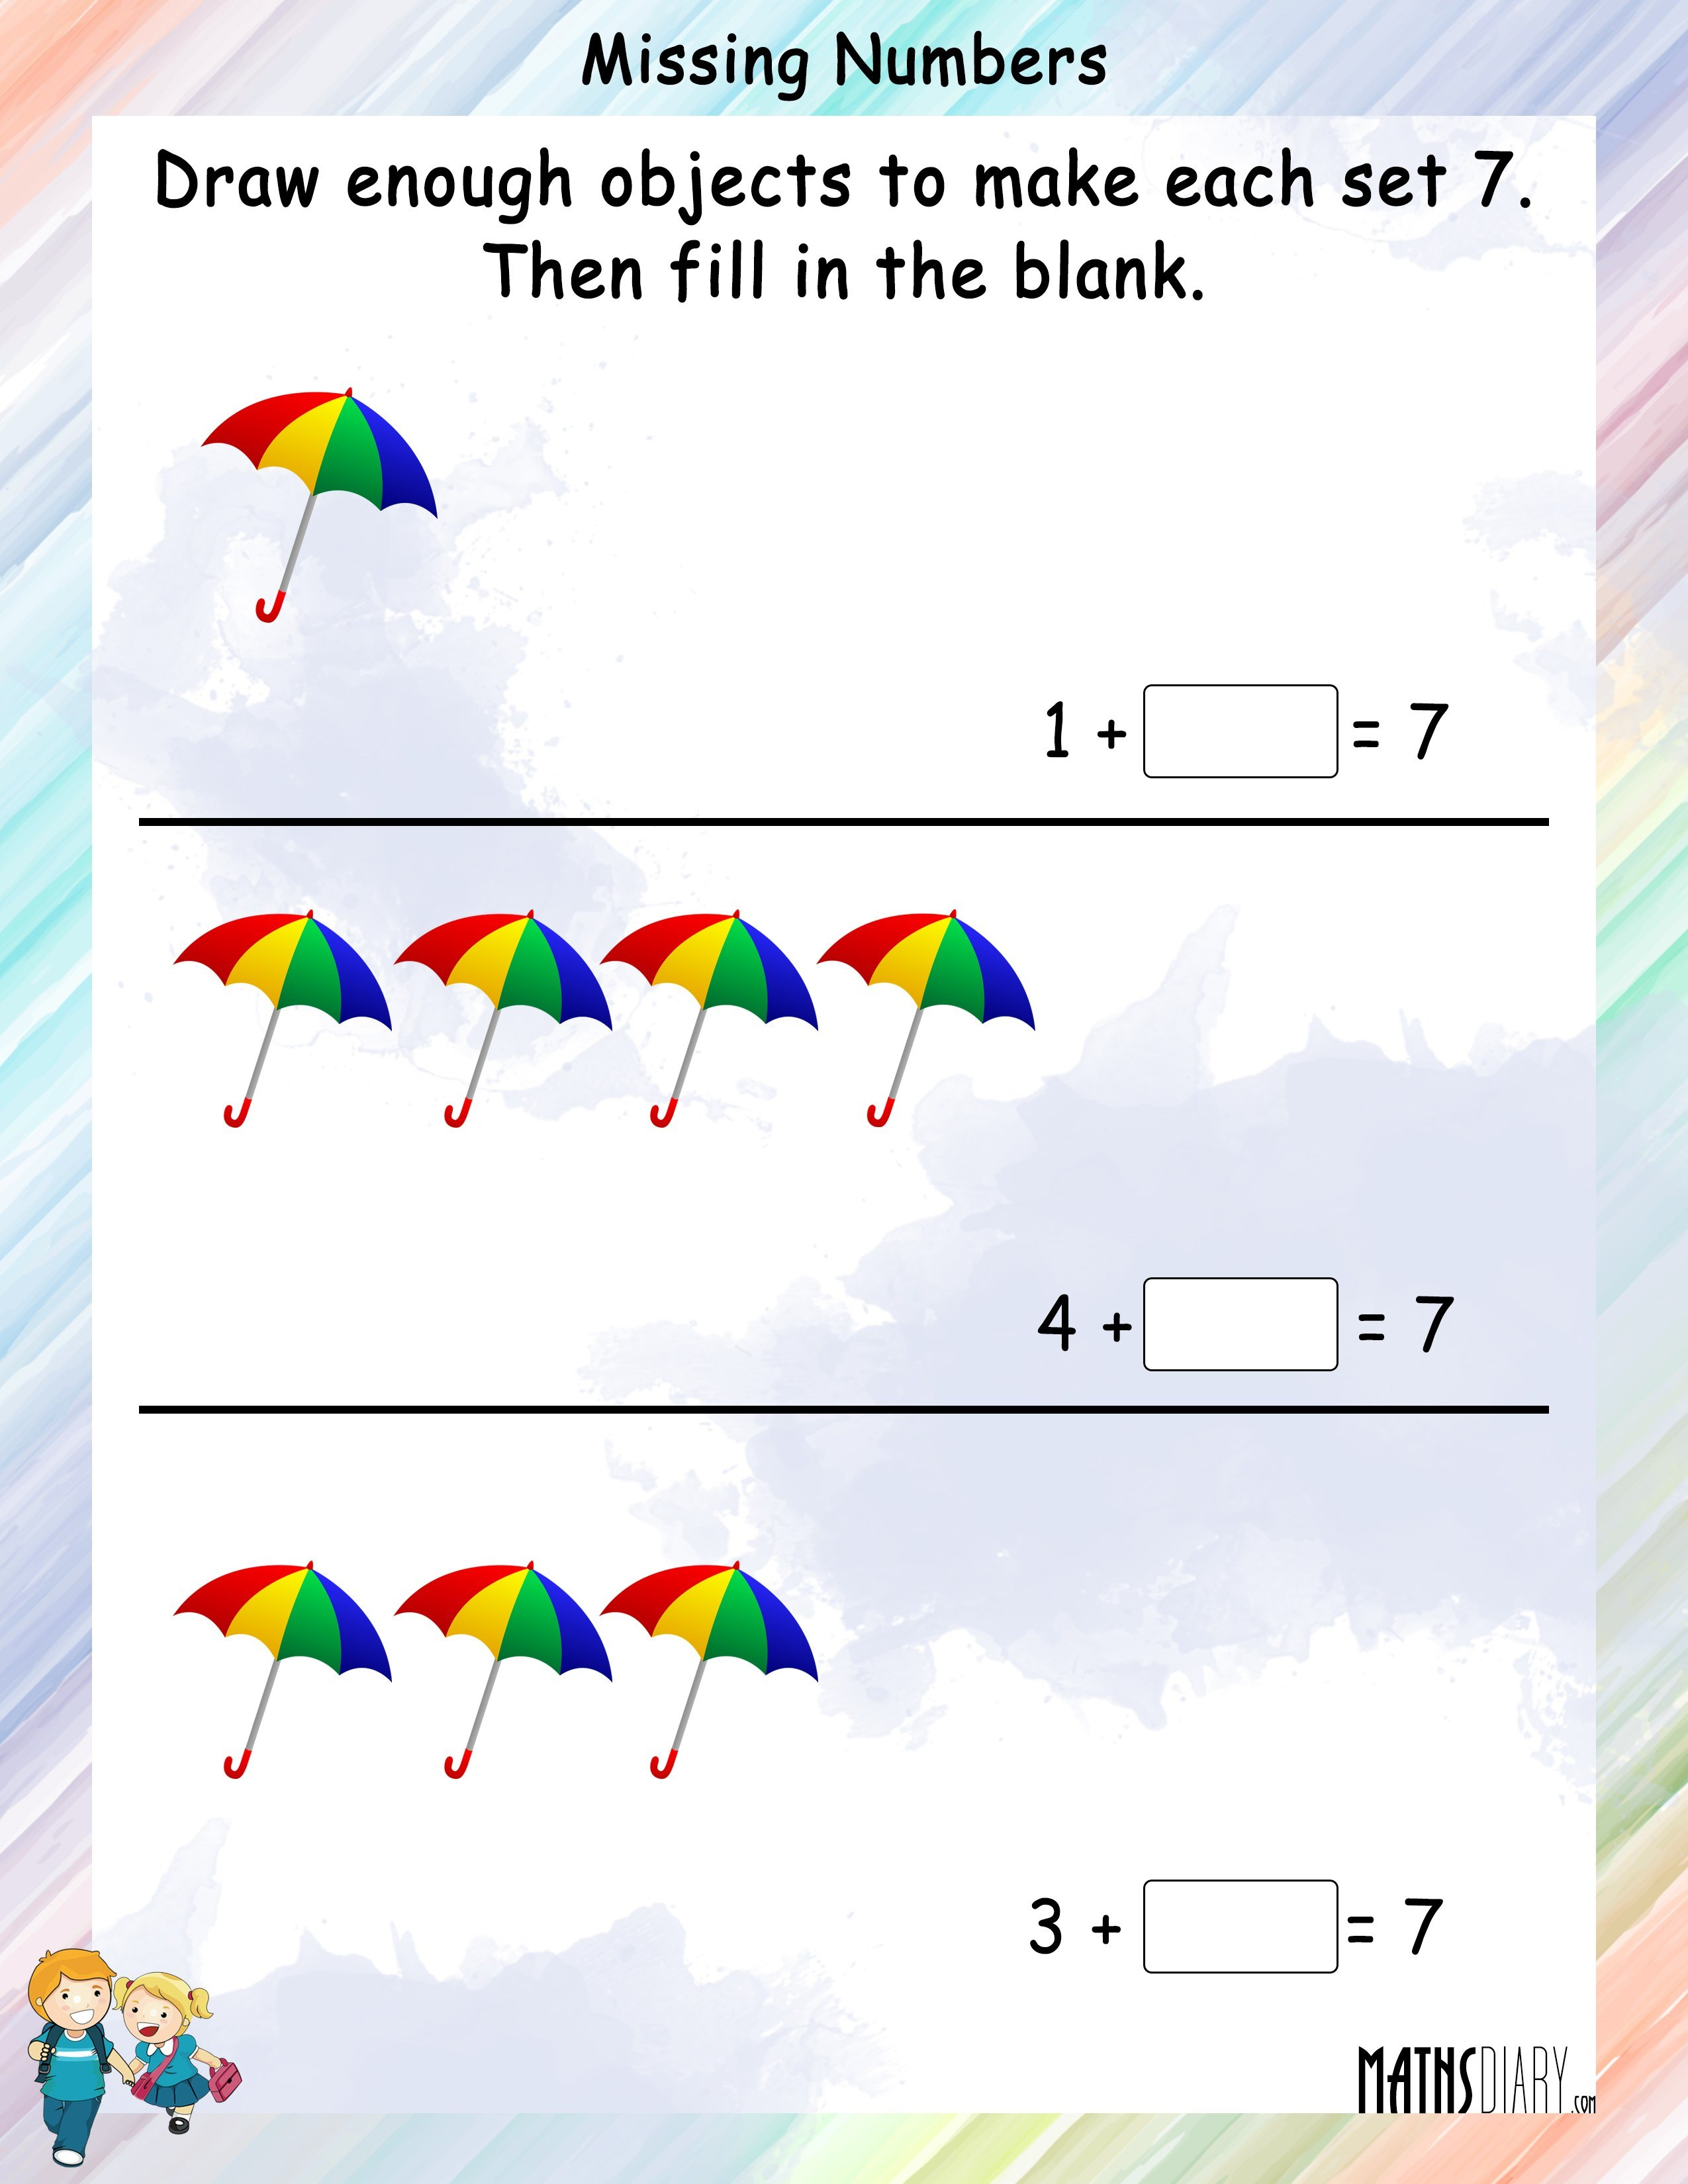 Draw And Color Objects To Complete The Given Counting